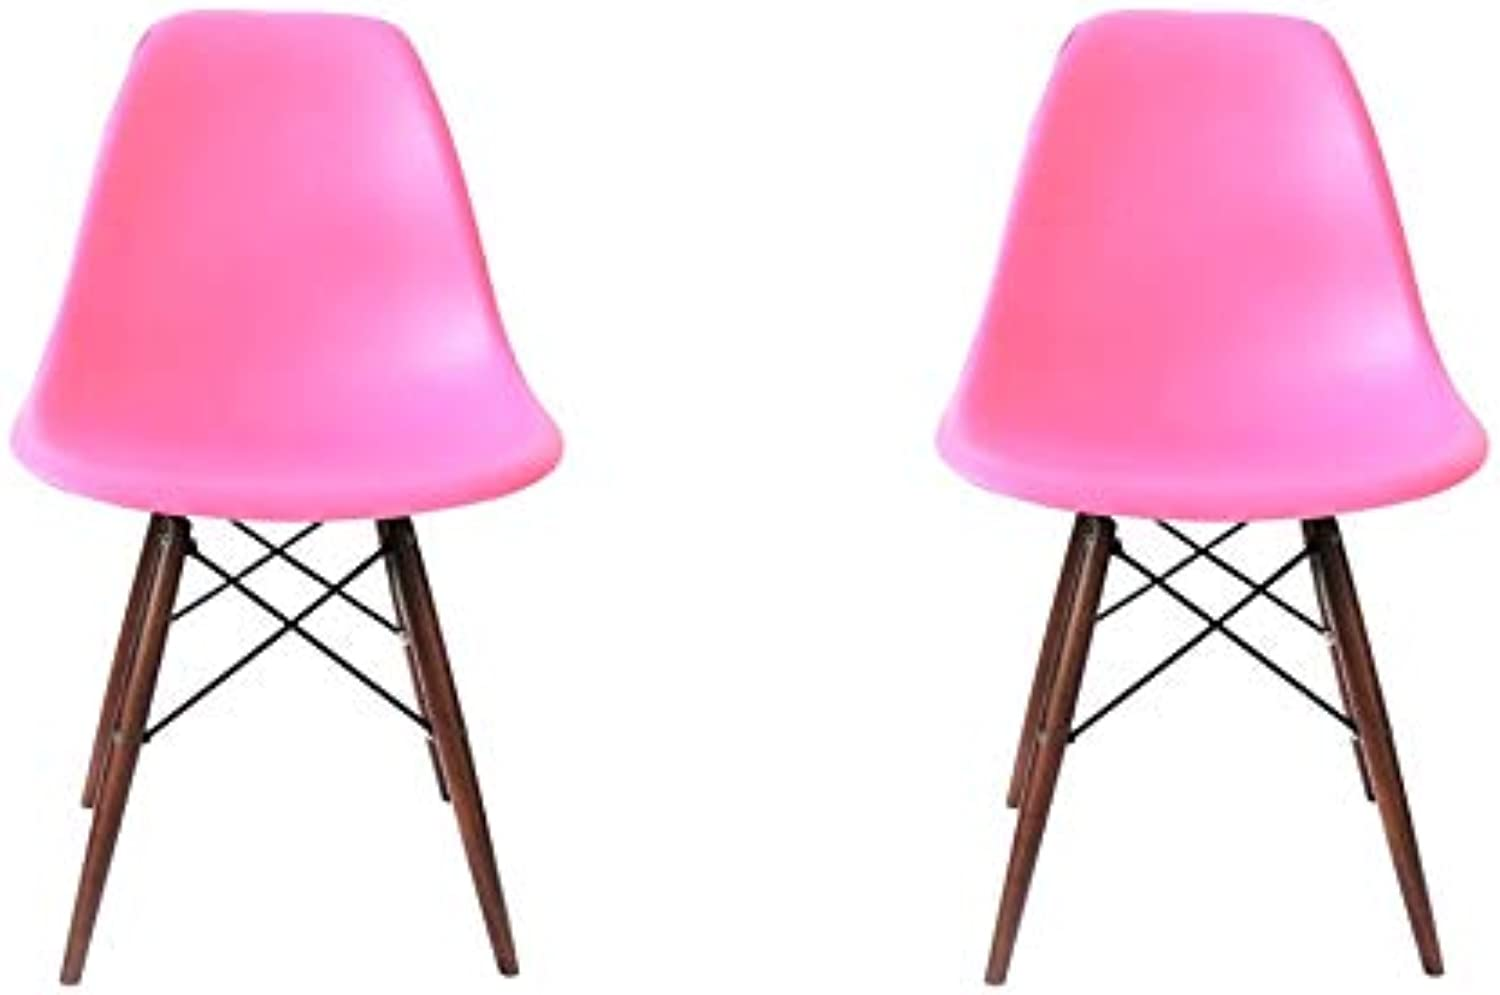 silver Import Eames Style Side Chair Natural Wood Legs Eiffel Dining Room Chair in Pink Set 2